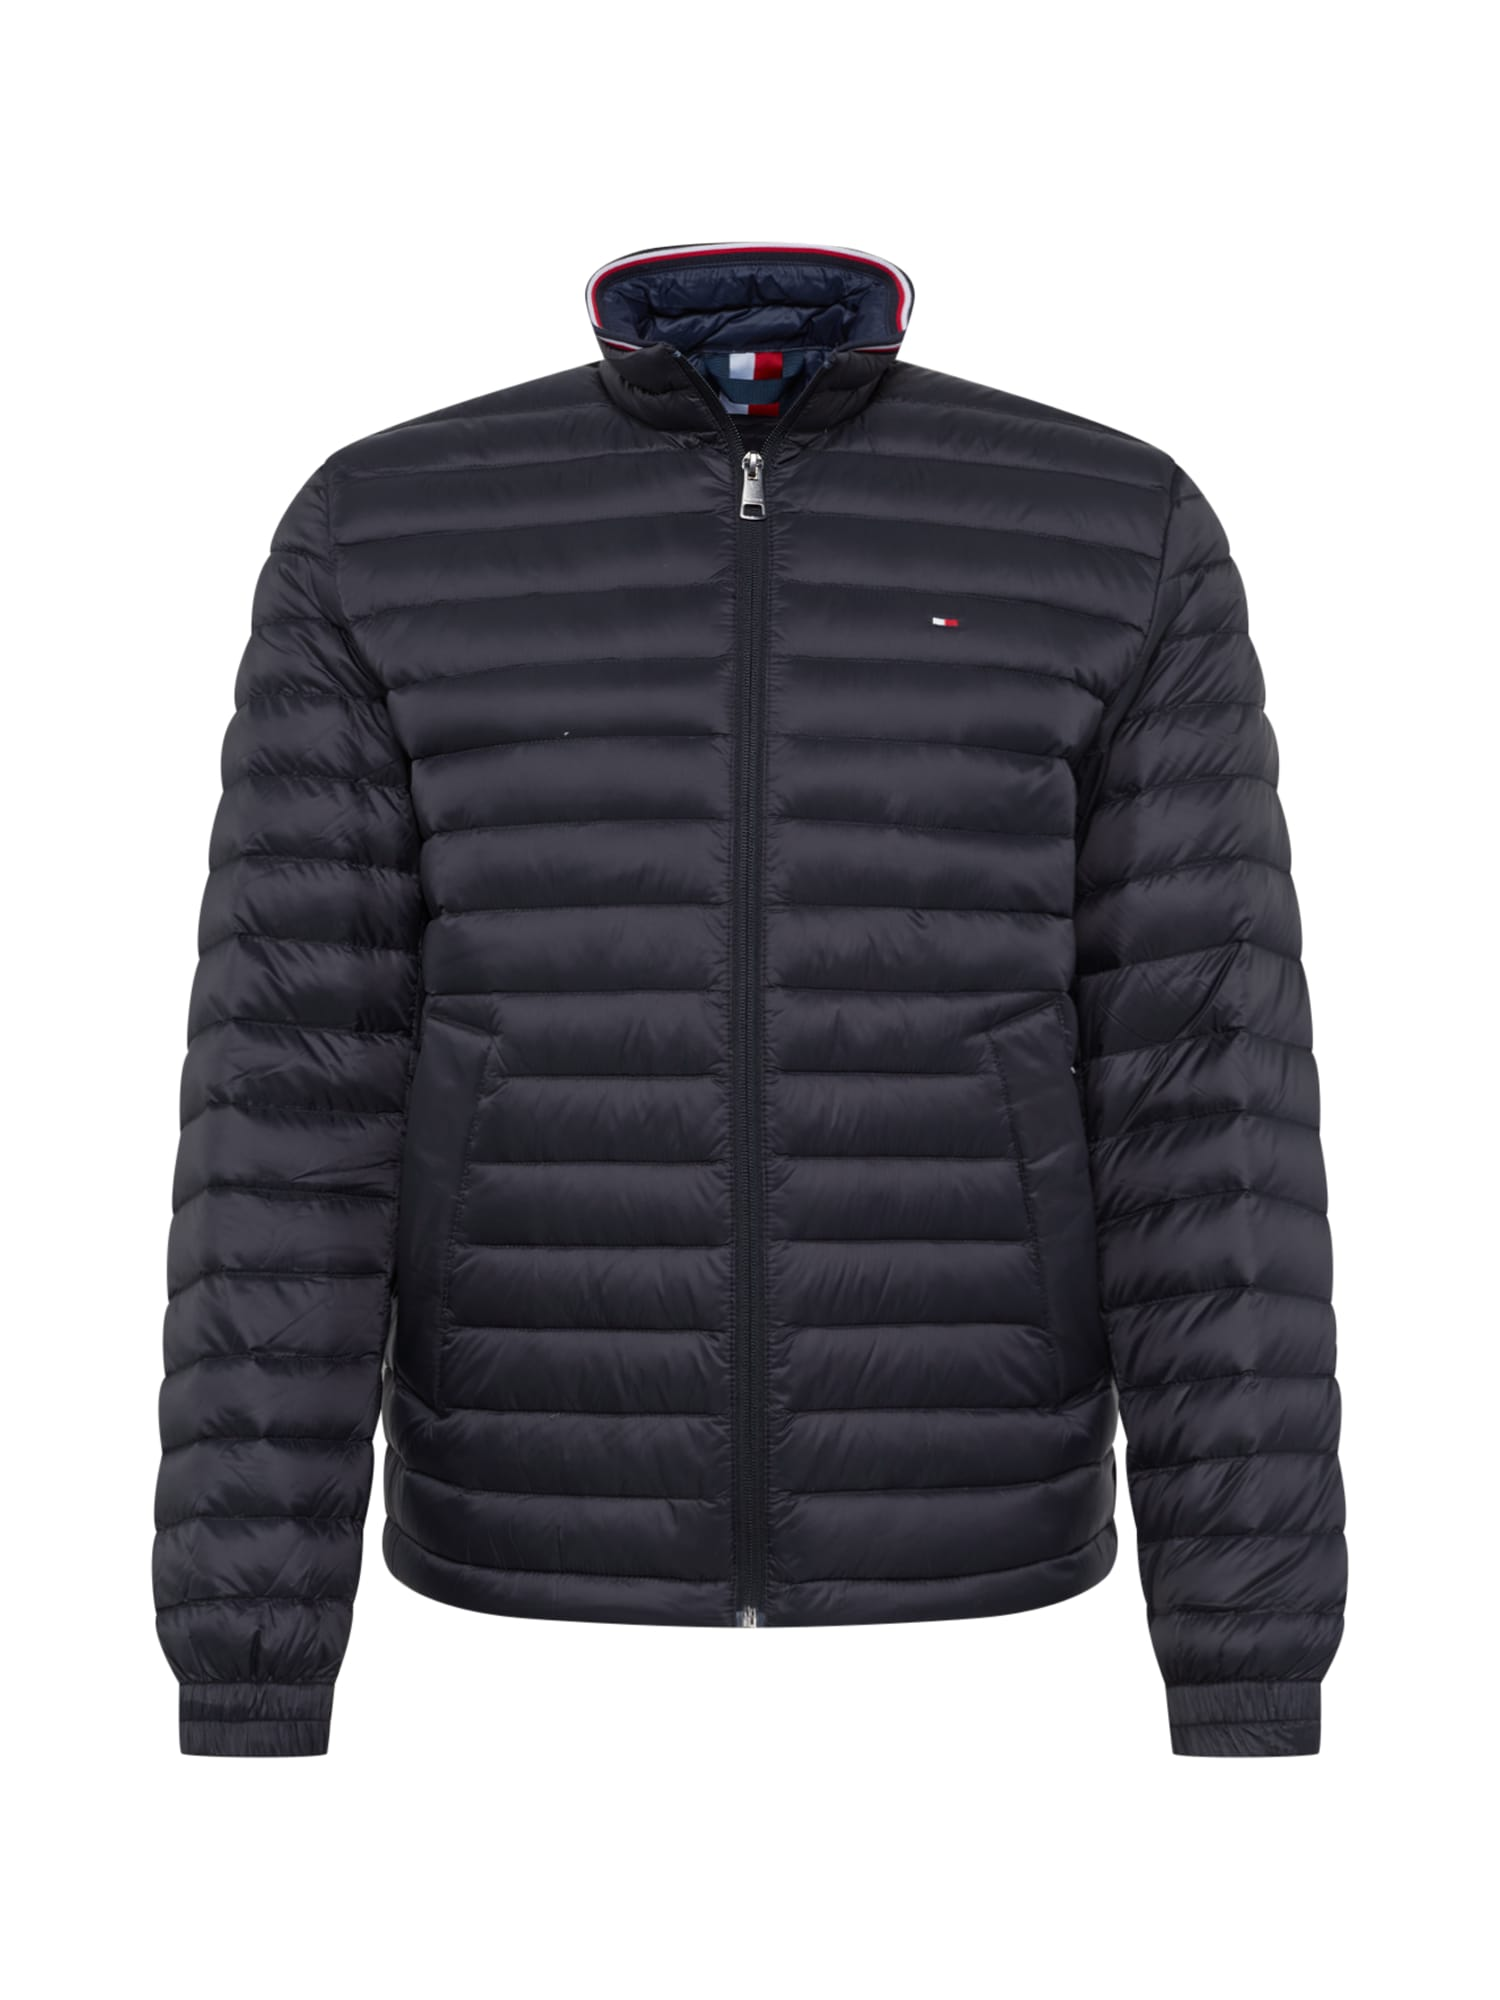 TOMMY HILFIGER Demisezoninė striukė 'CORE PACKABLE DOWN JACKET' juoda